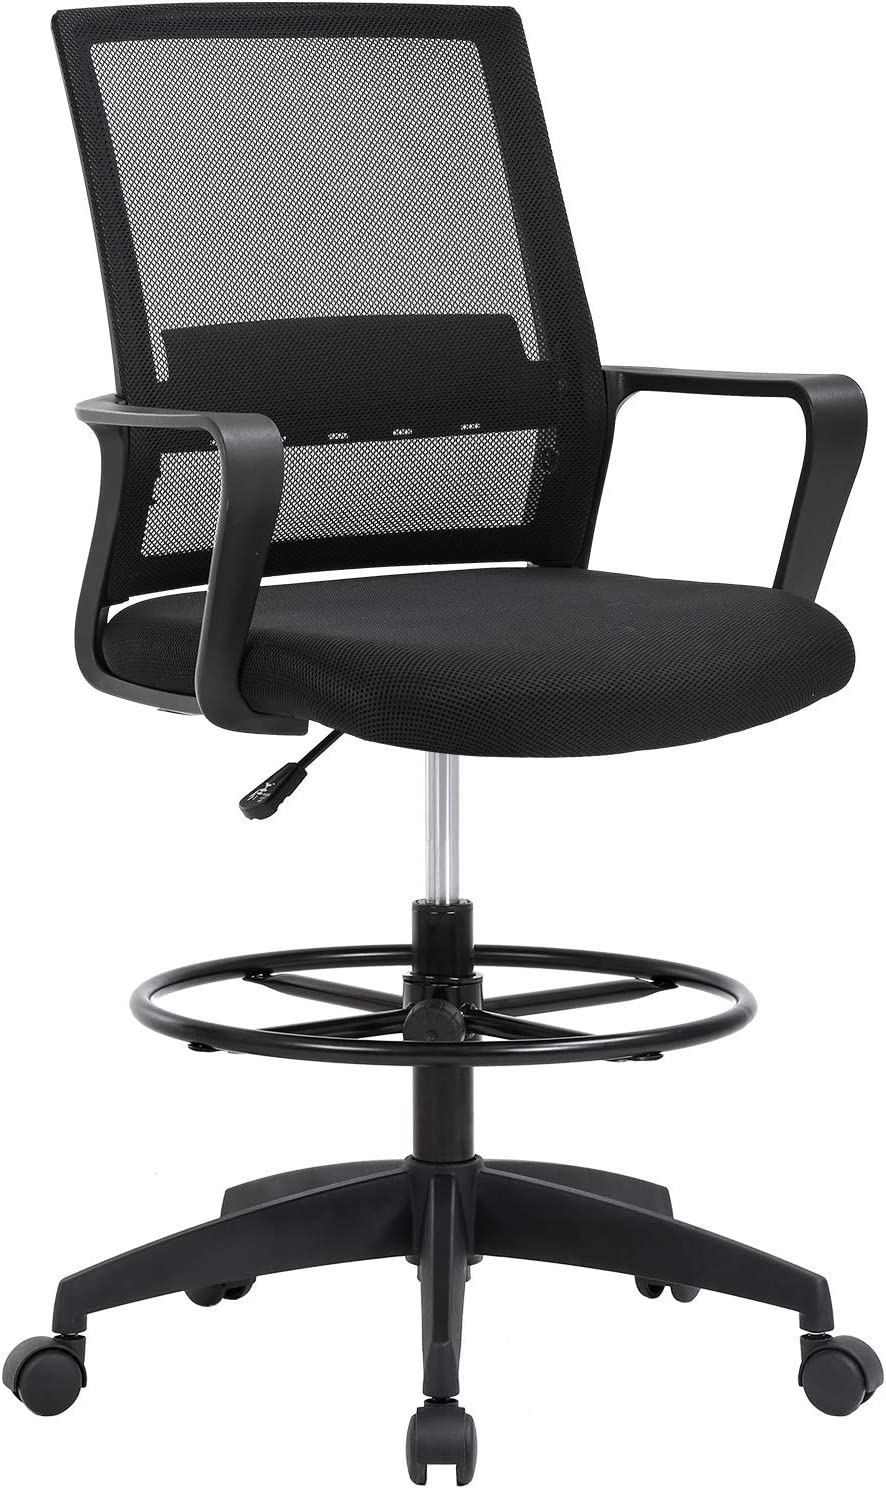 Drafting Chair Tall Office Chair Adjustable Height with Lumbar Support Arms Footrest Mid Back Desk Chair Swivel Rolling Mesh Computer Chair for Adults Standing Desk Drafting Stool(Black)